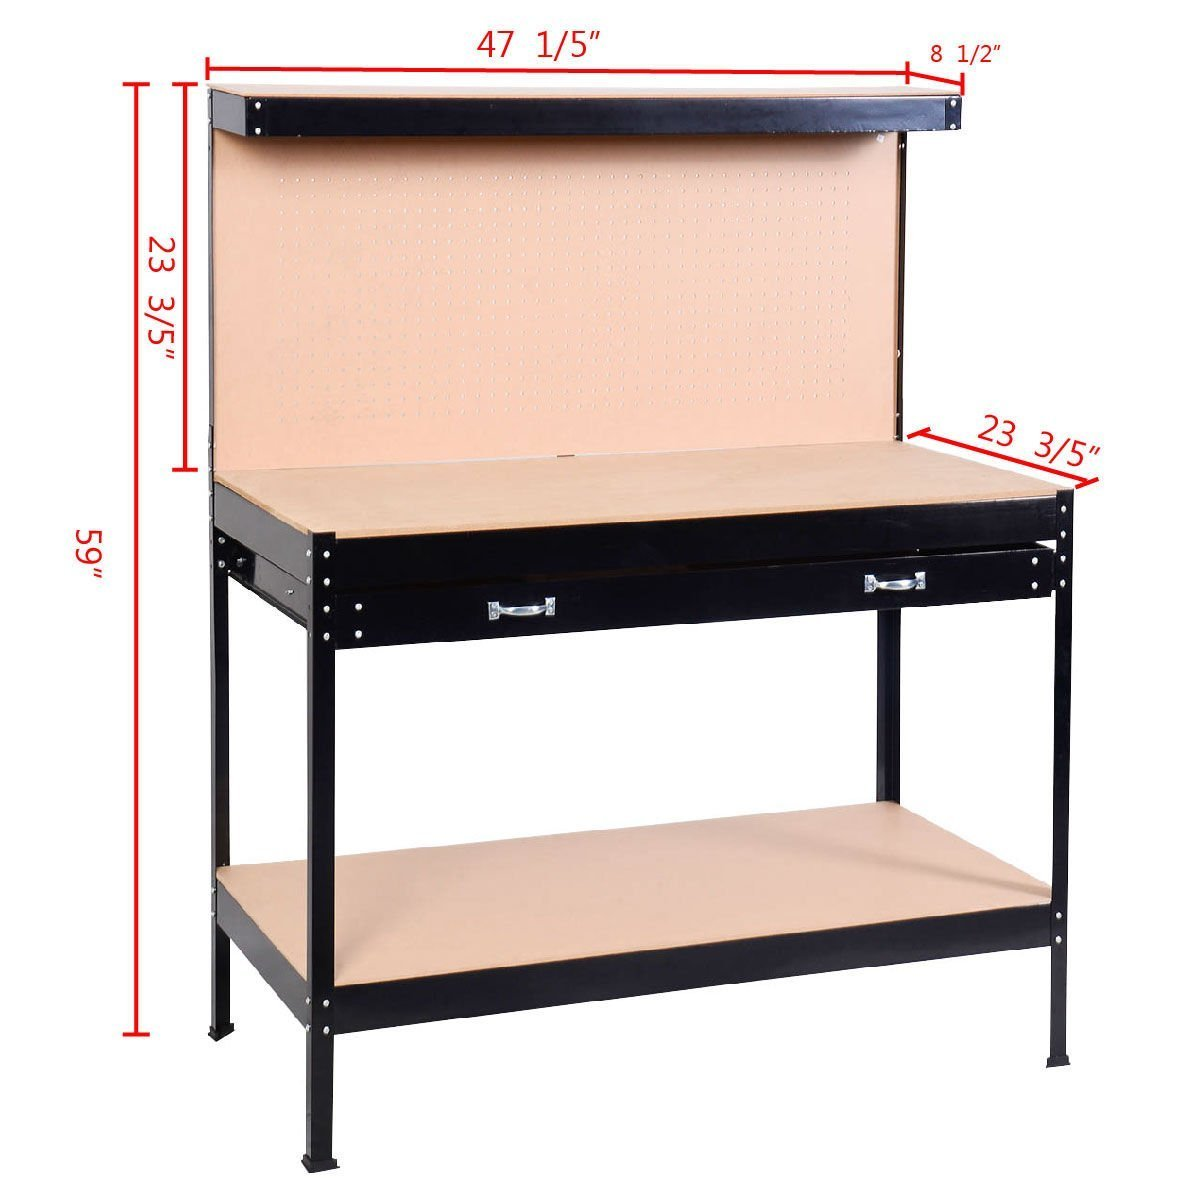 Work Bench Tool Storage Steel Frame Tool Workshop Table W/ Drawer and Peg Boar Bonus free ebook By Allgoodsdelight365 by allgoodsdelight365 (Image #4)